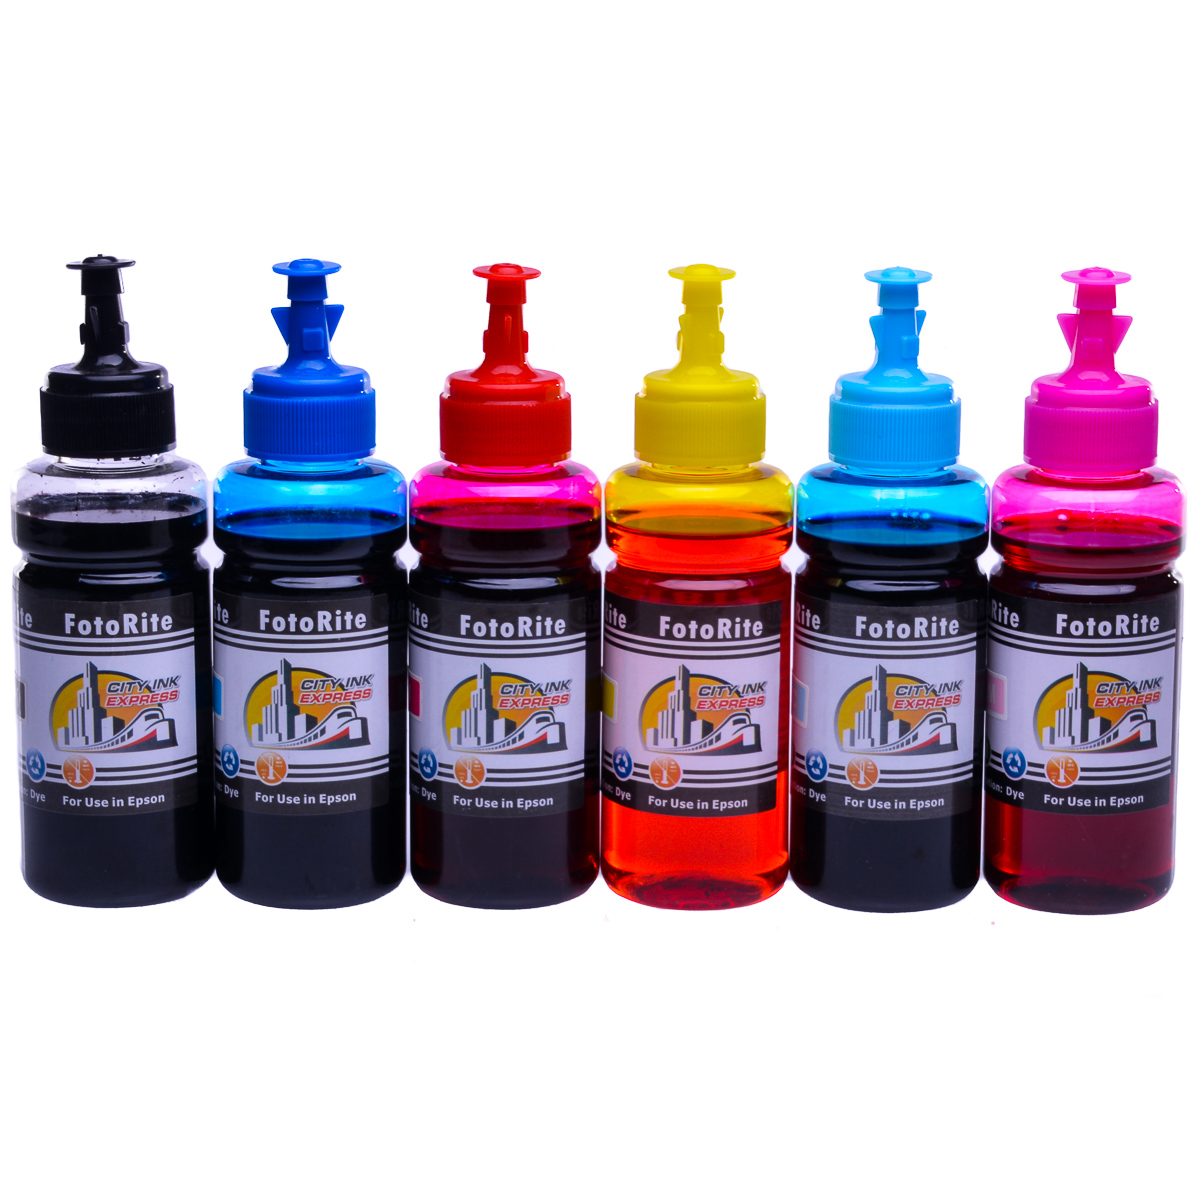 Cheap Multipack dye ink refill replaces Epson Stylus RX700